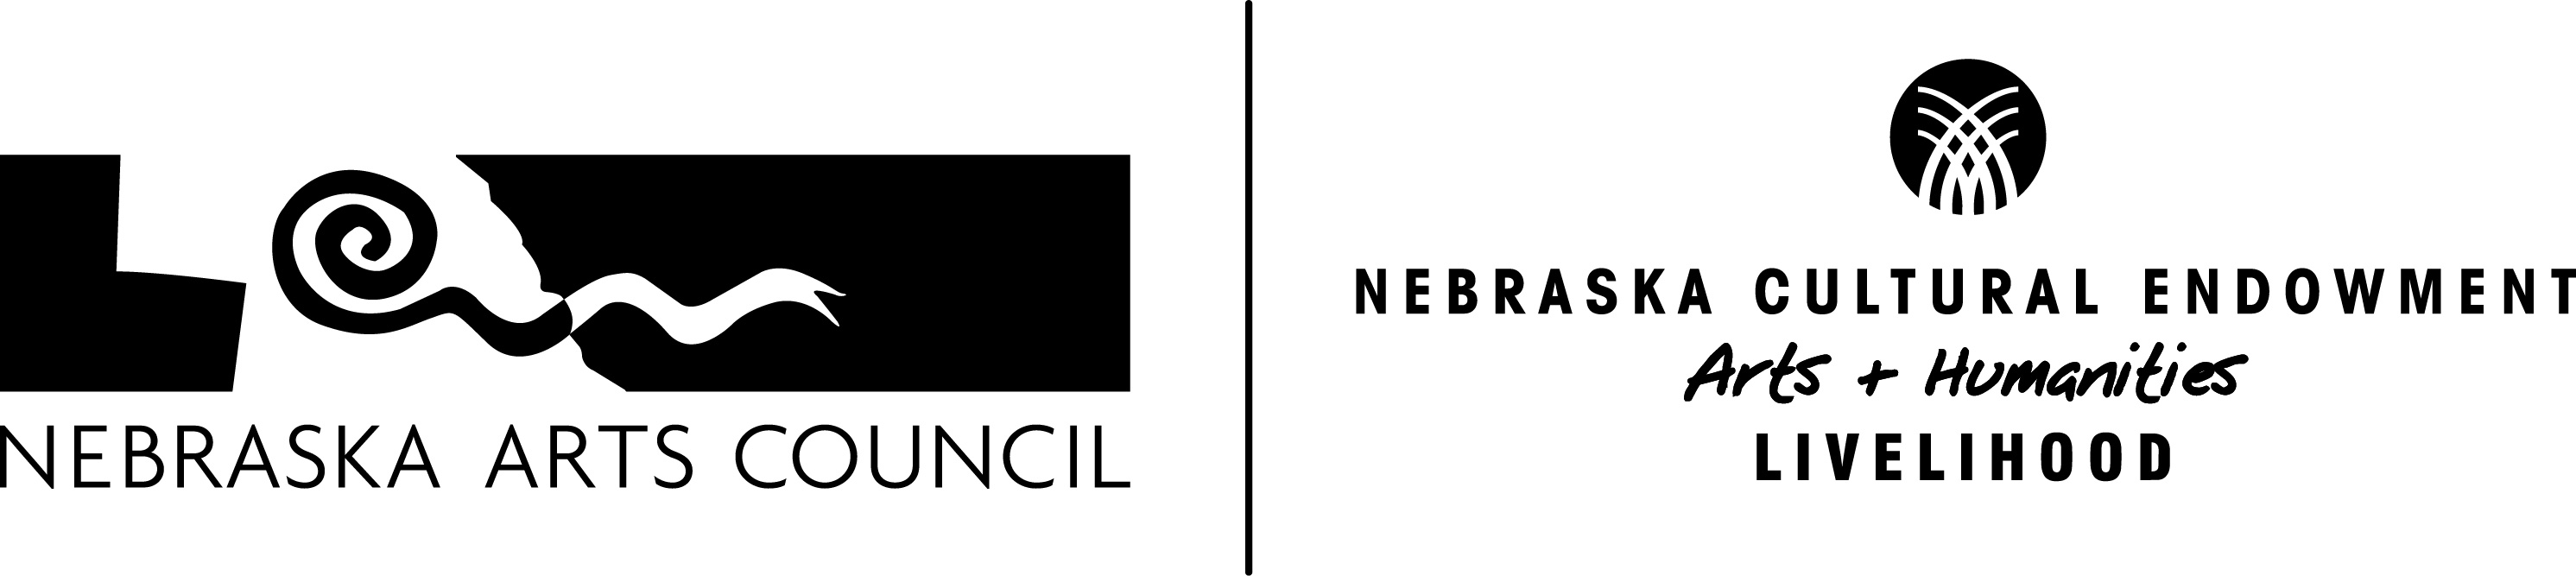 Nebraska Arts Council/Nebraska Cultural Endowment